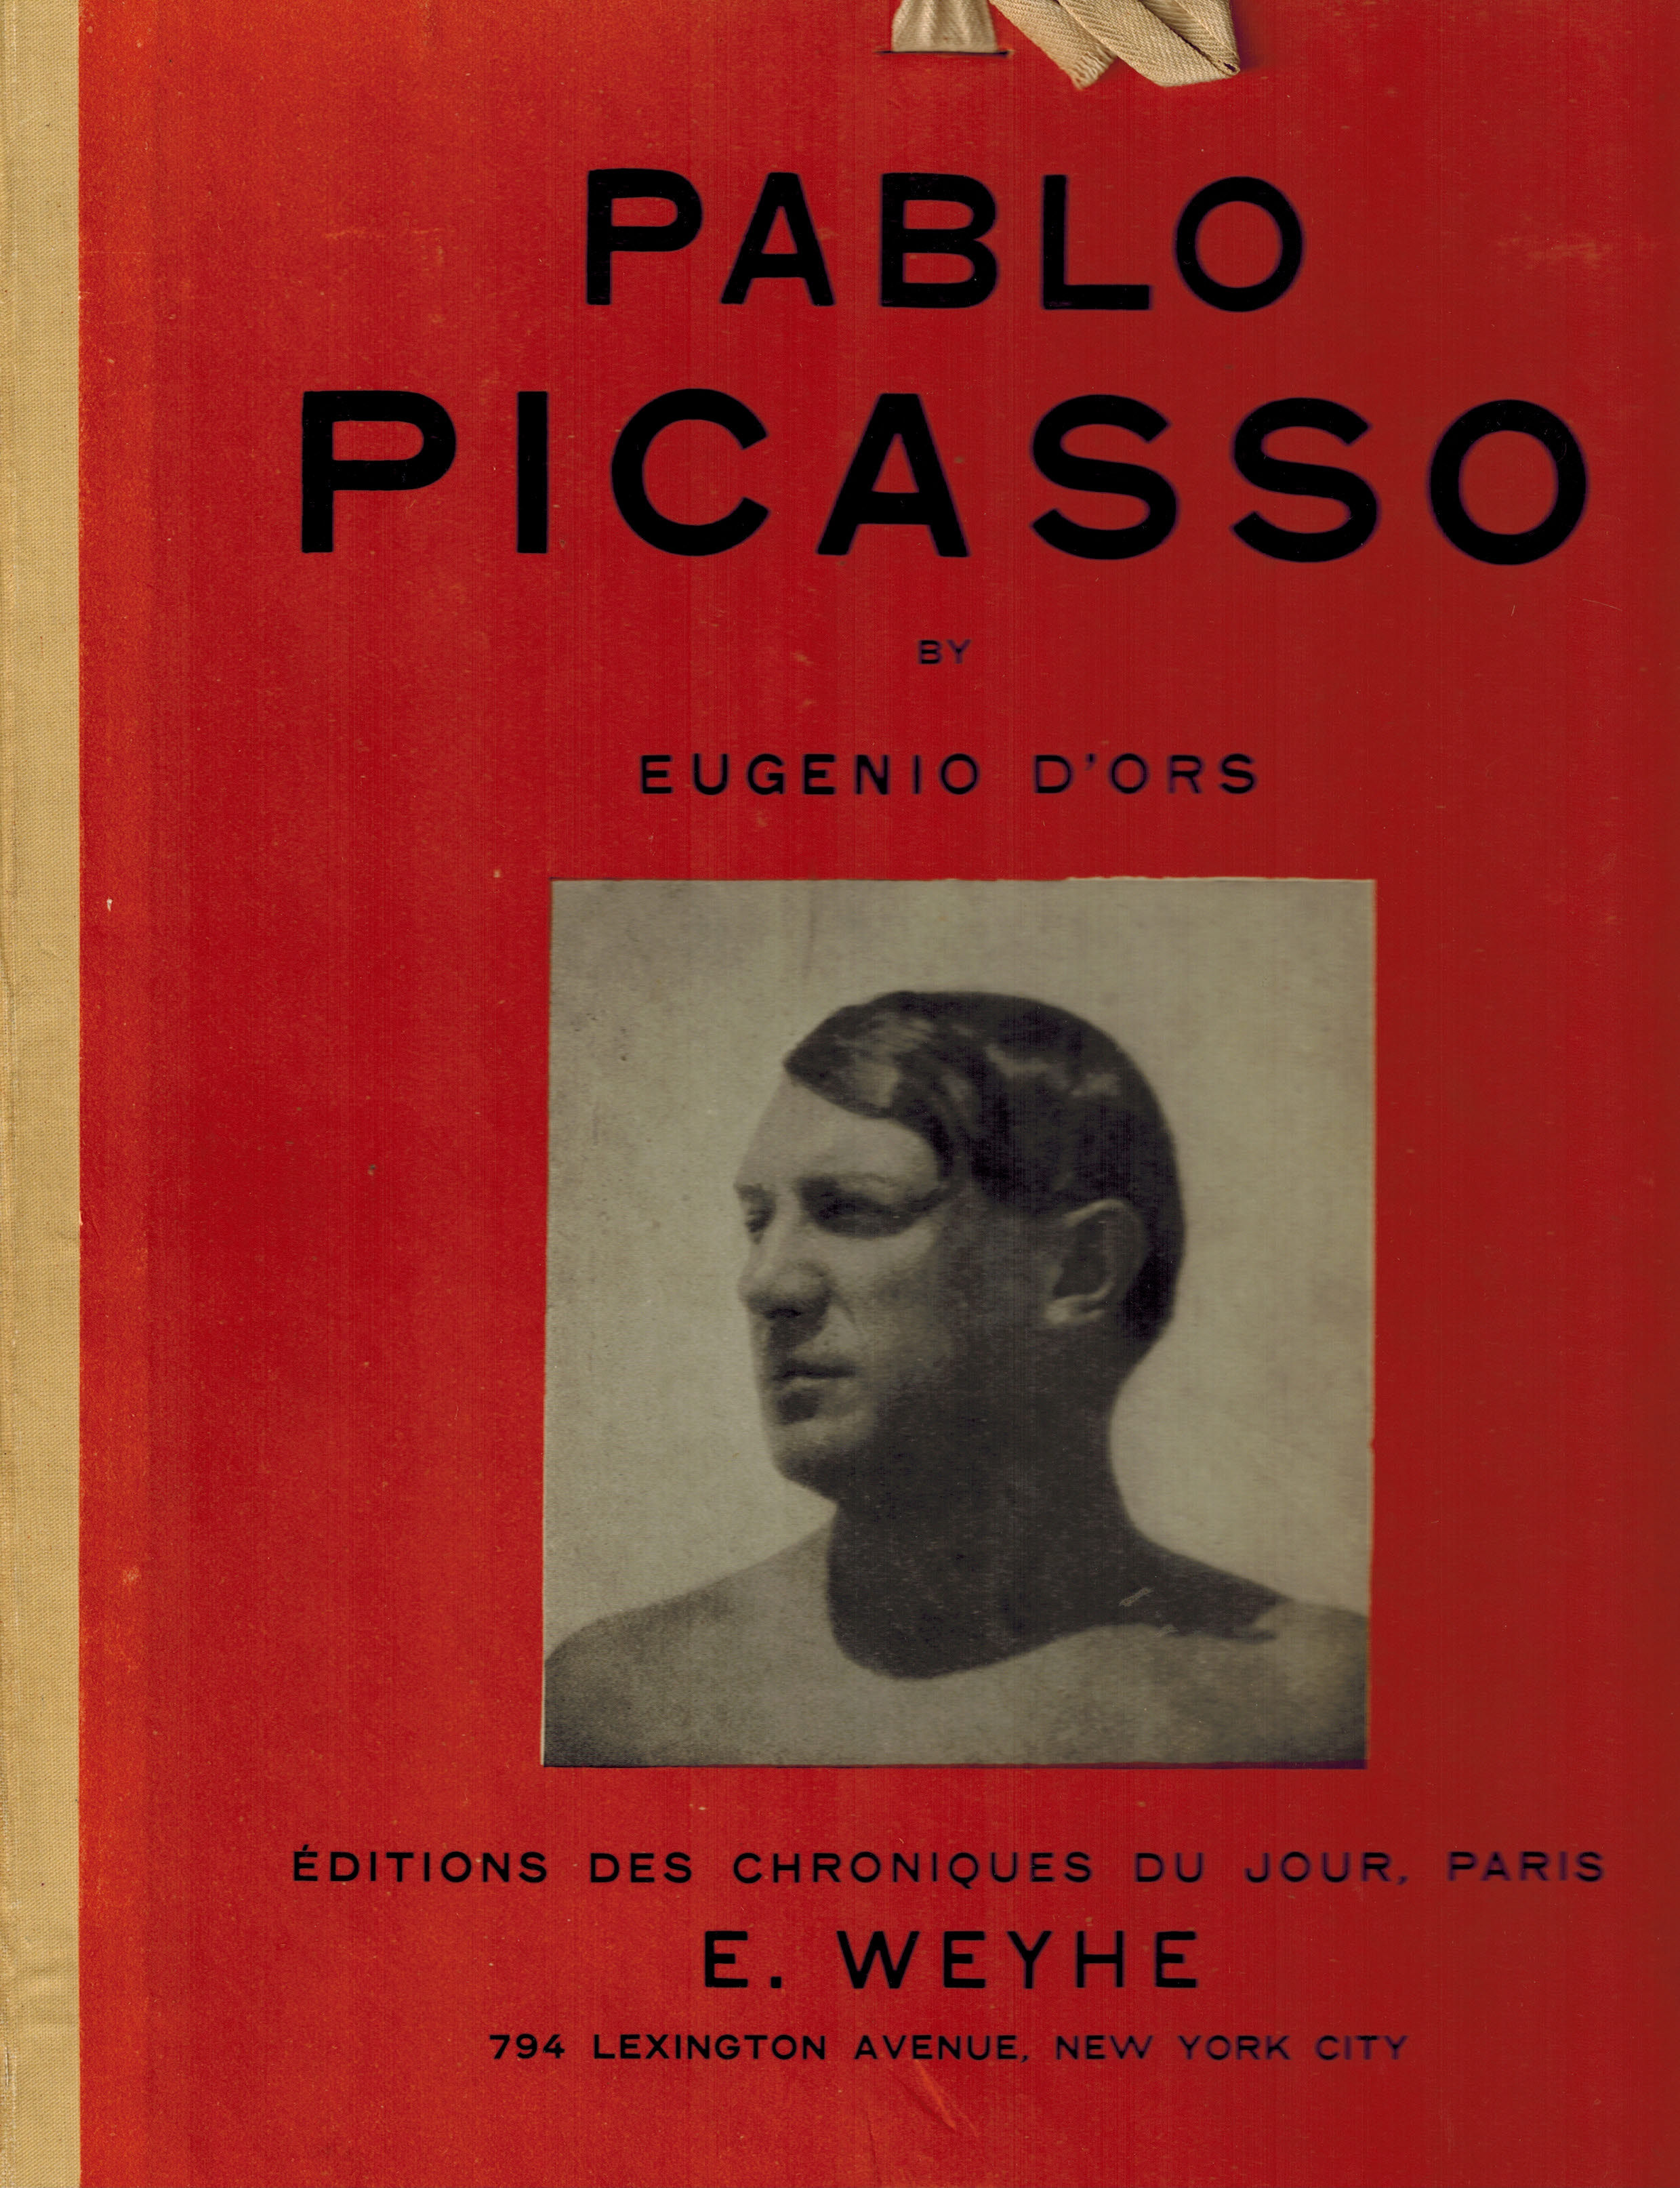 pablo picasso images of the 1930s